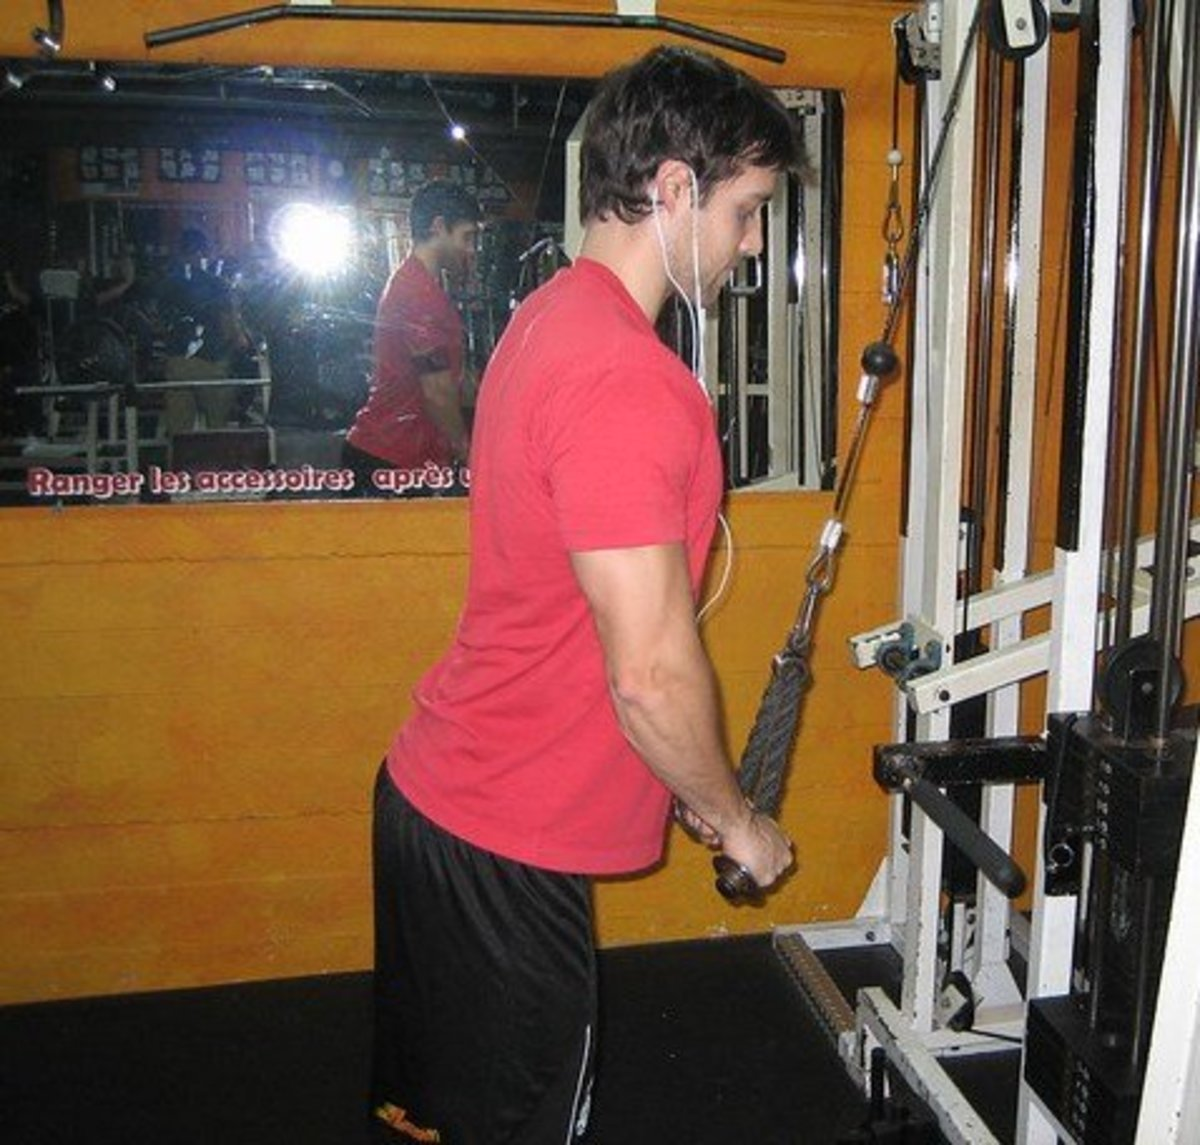 Triceps Muscle Blaster: Drop-Sets Using the Rope